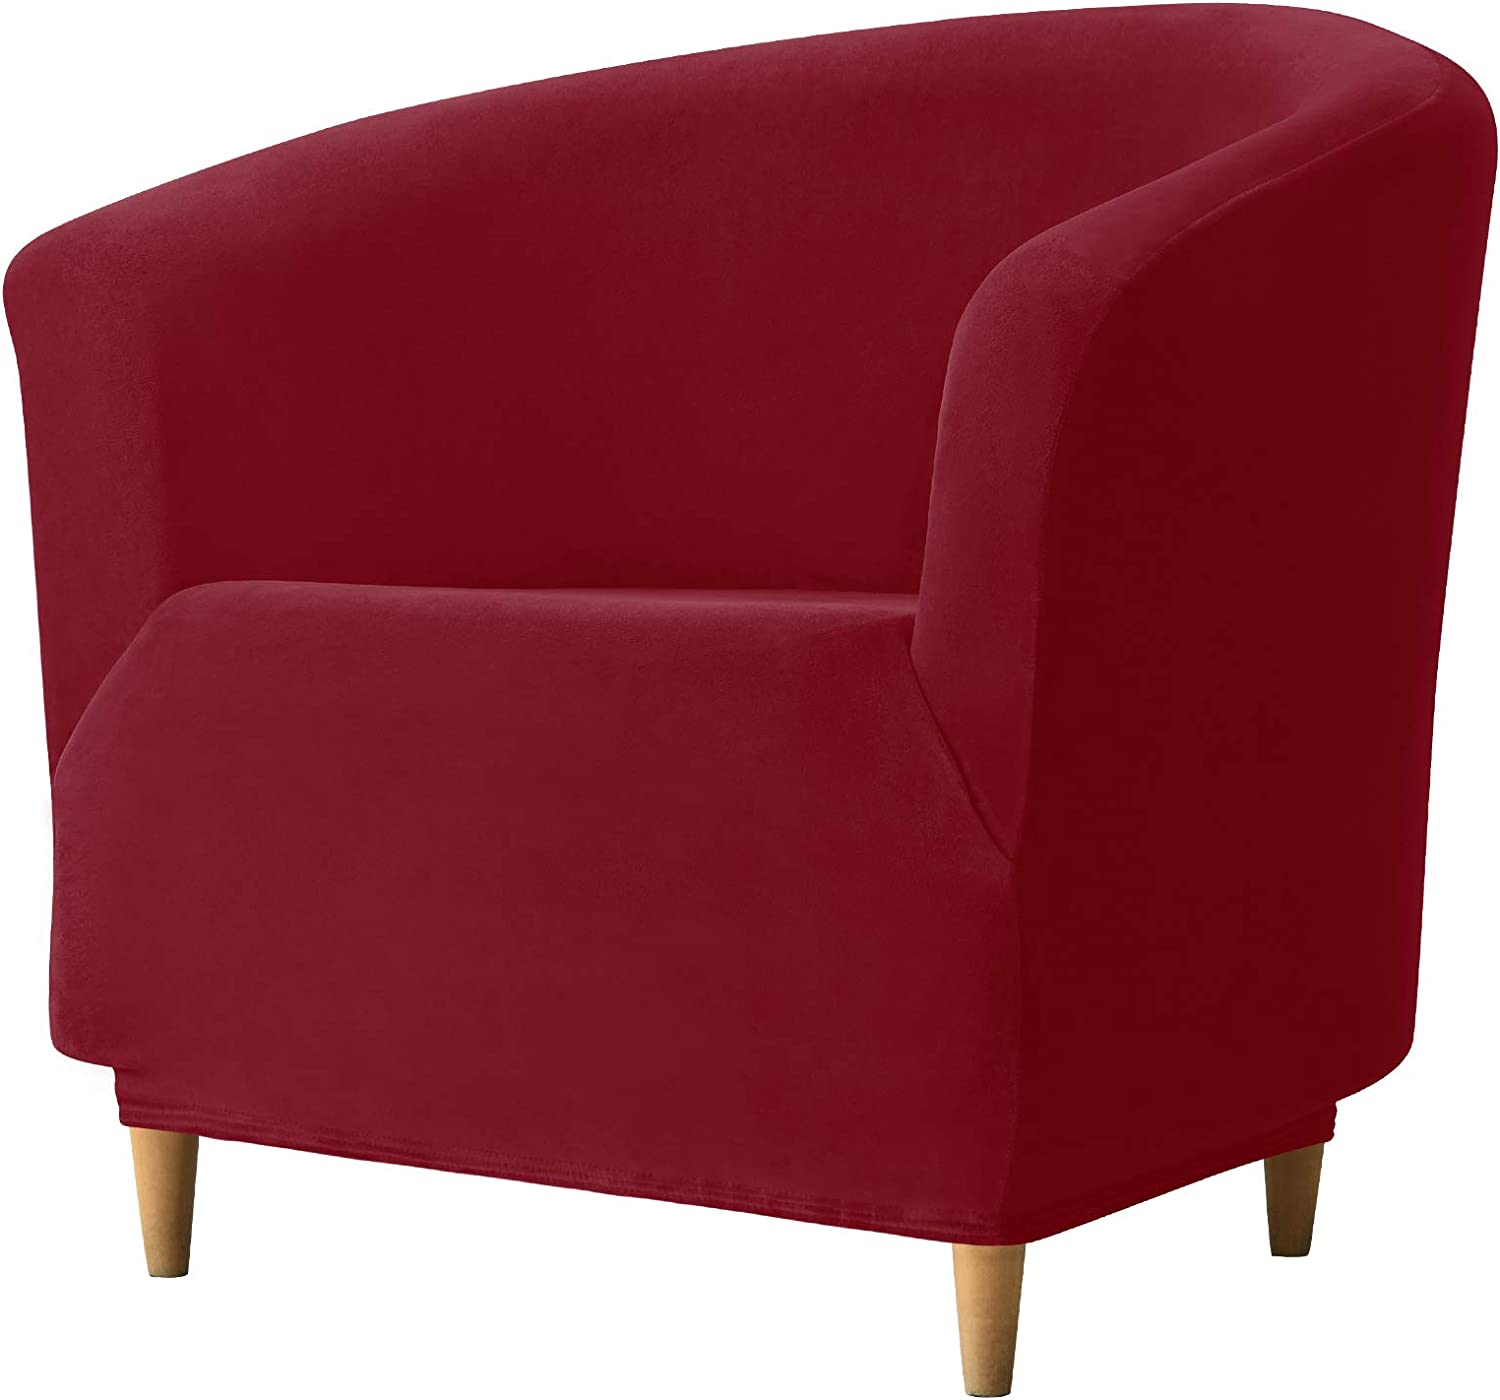 REECOTEX Velvet Club Chair Slipcover, Soft Stretch Tub Chair Cover for Living Room and Bedroom, Washable and Removable Armchair Protector, Furniture Protector for Home Decor,Burgundy